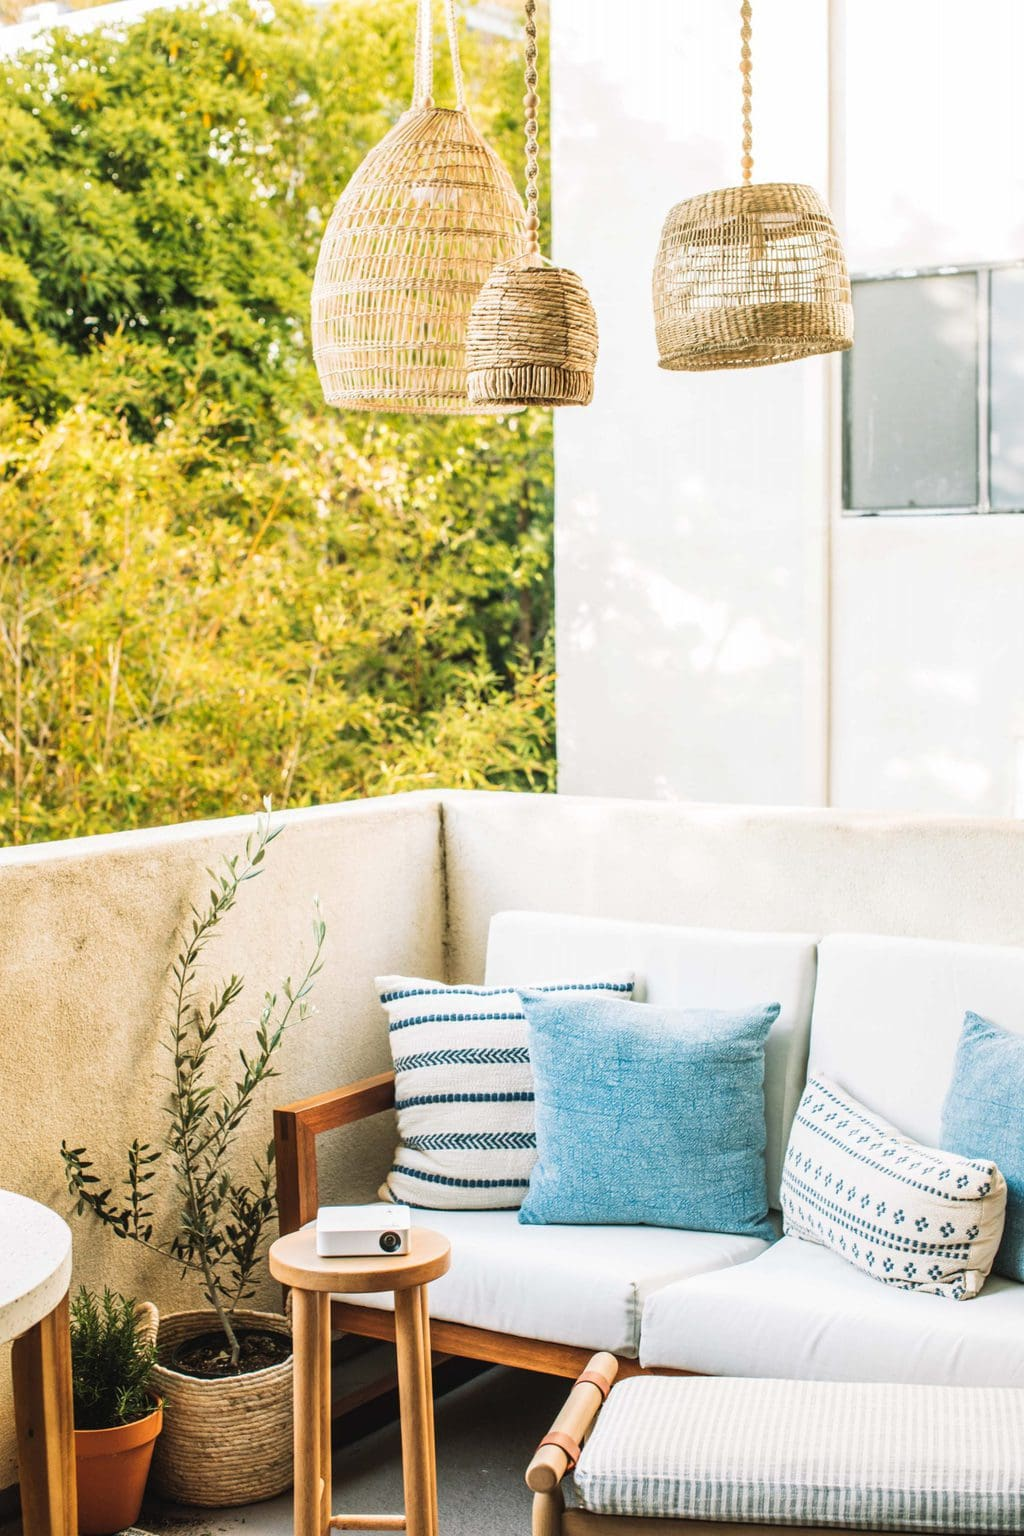 Lanterns hanging over an outdoor love seat with a small stool with a projector on it.